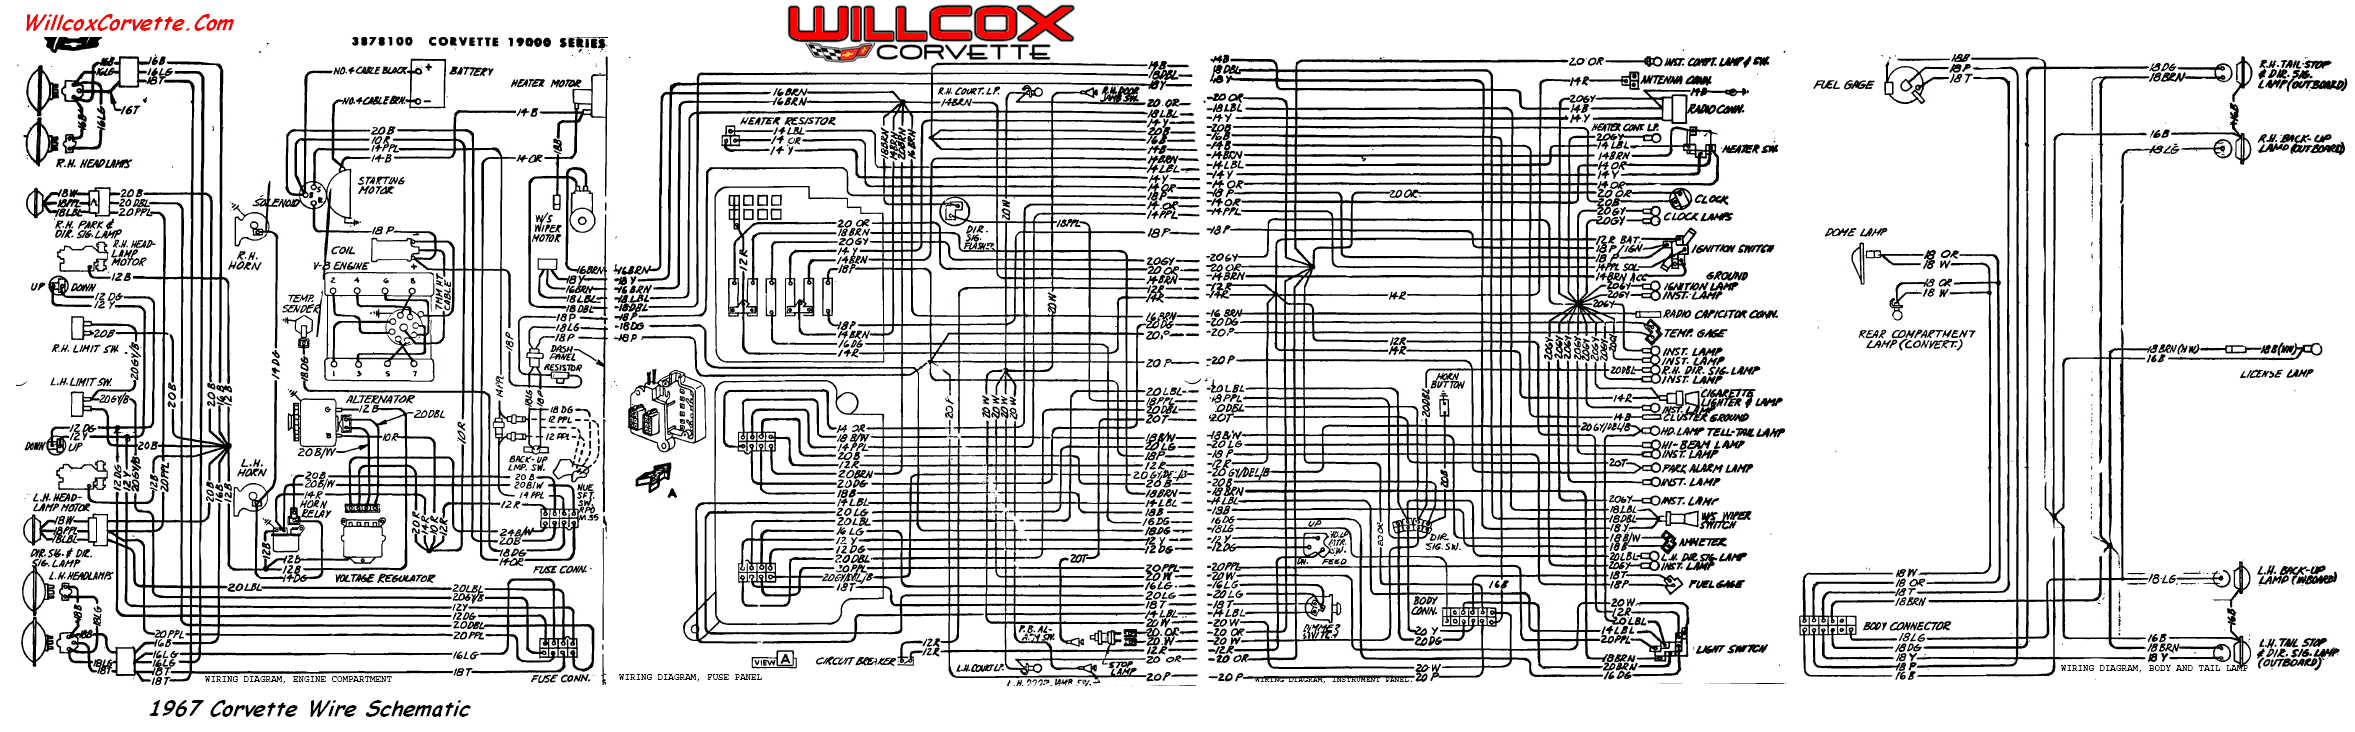 80440 Sep A01 Wiring Diagrama 2008 Ford E250 Fuse Box Diagram F40 Econoline 67 Wire Schematic For Tracing Wiresresize6652c207